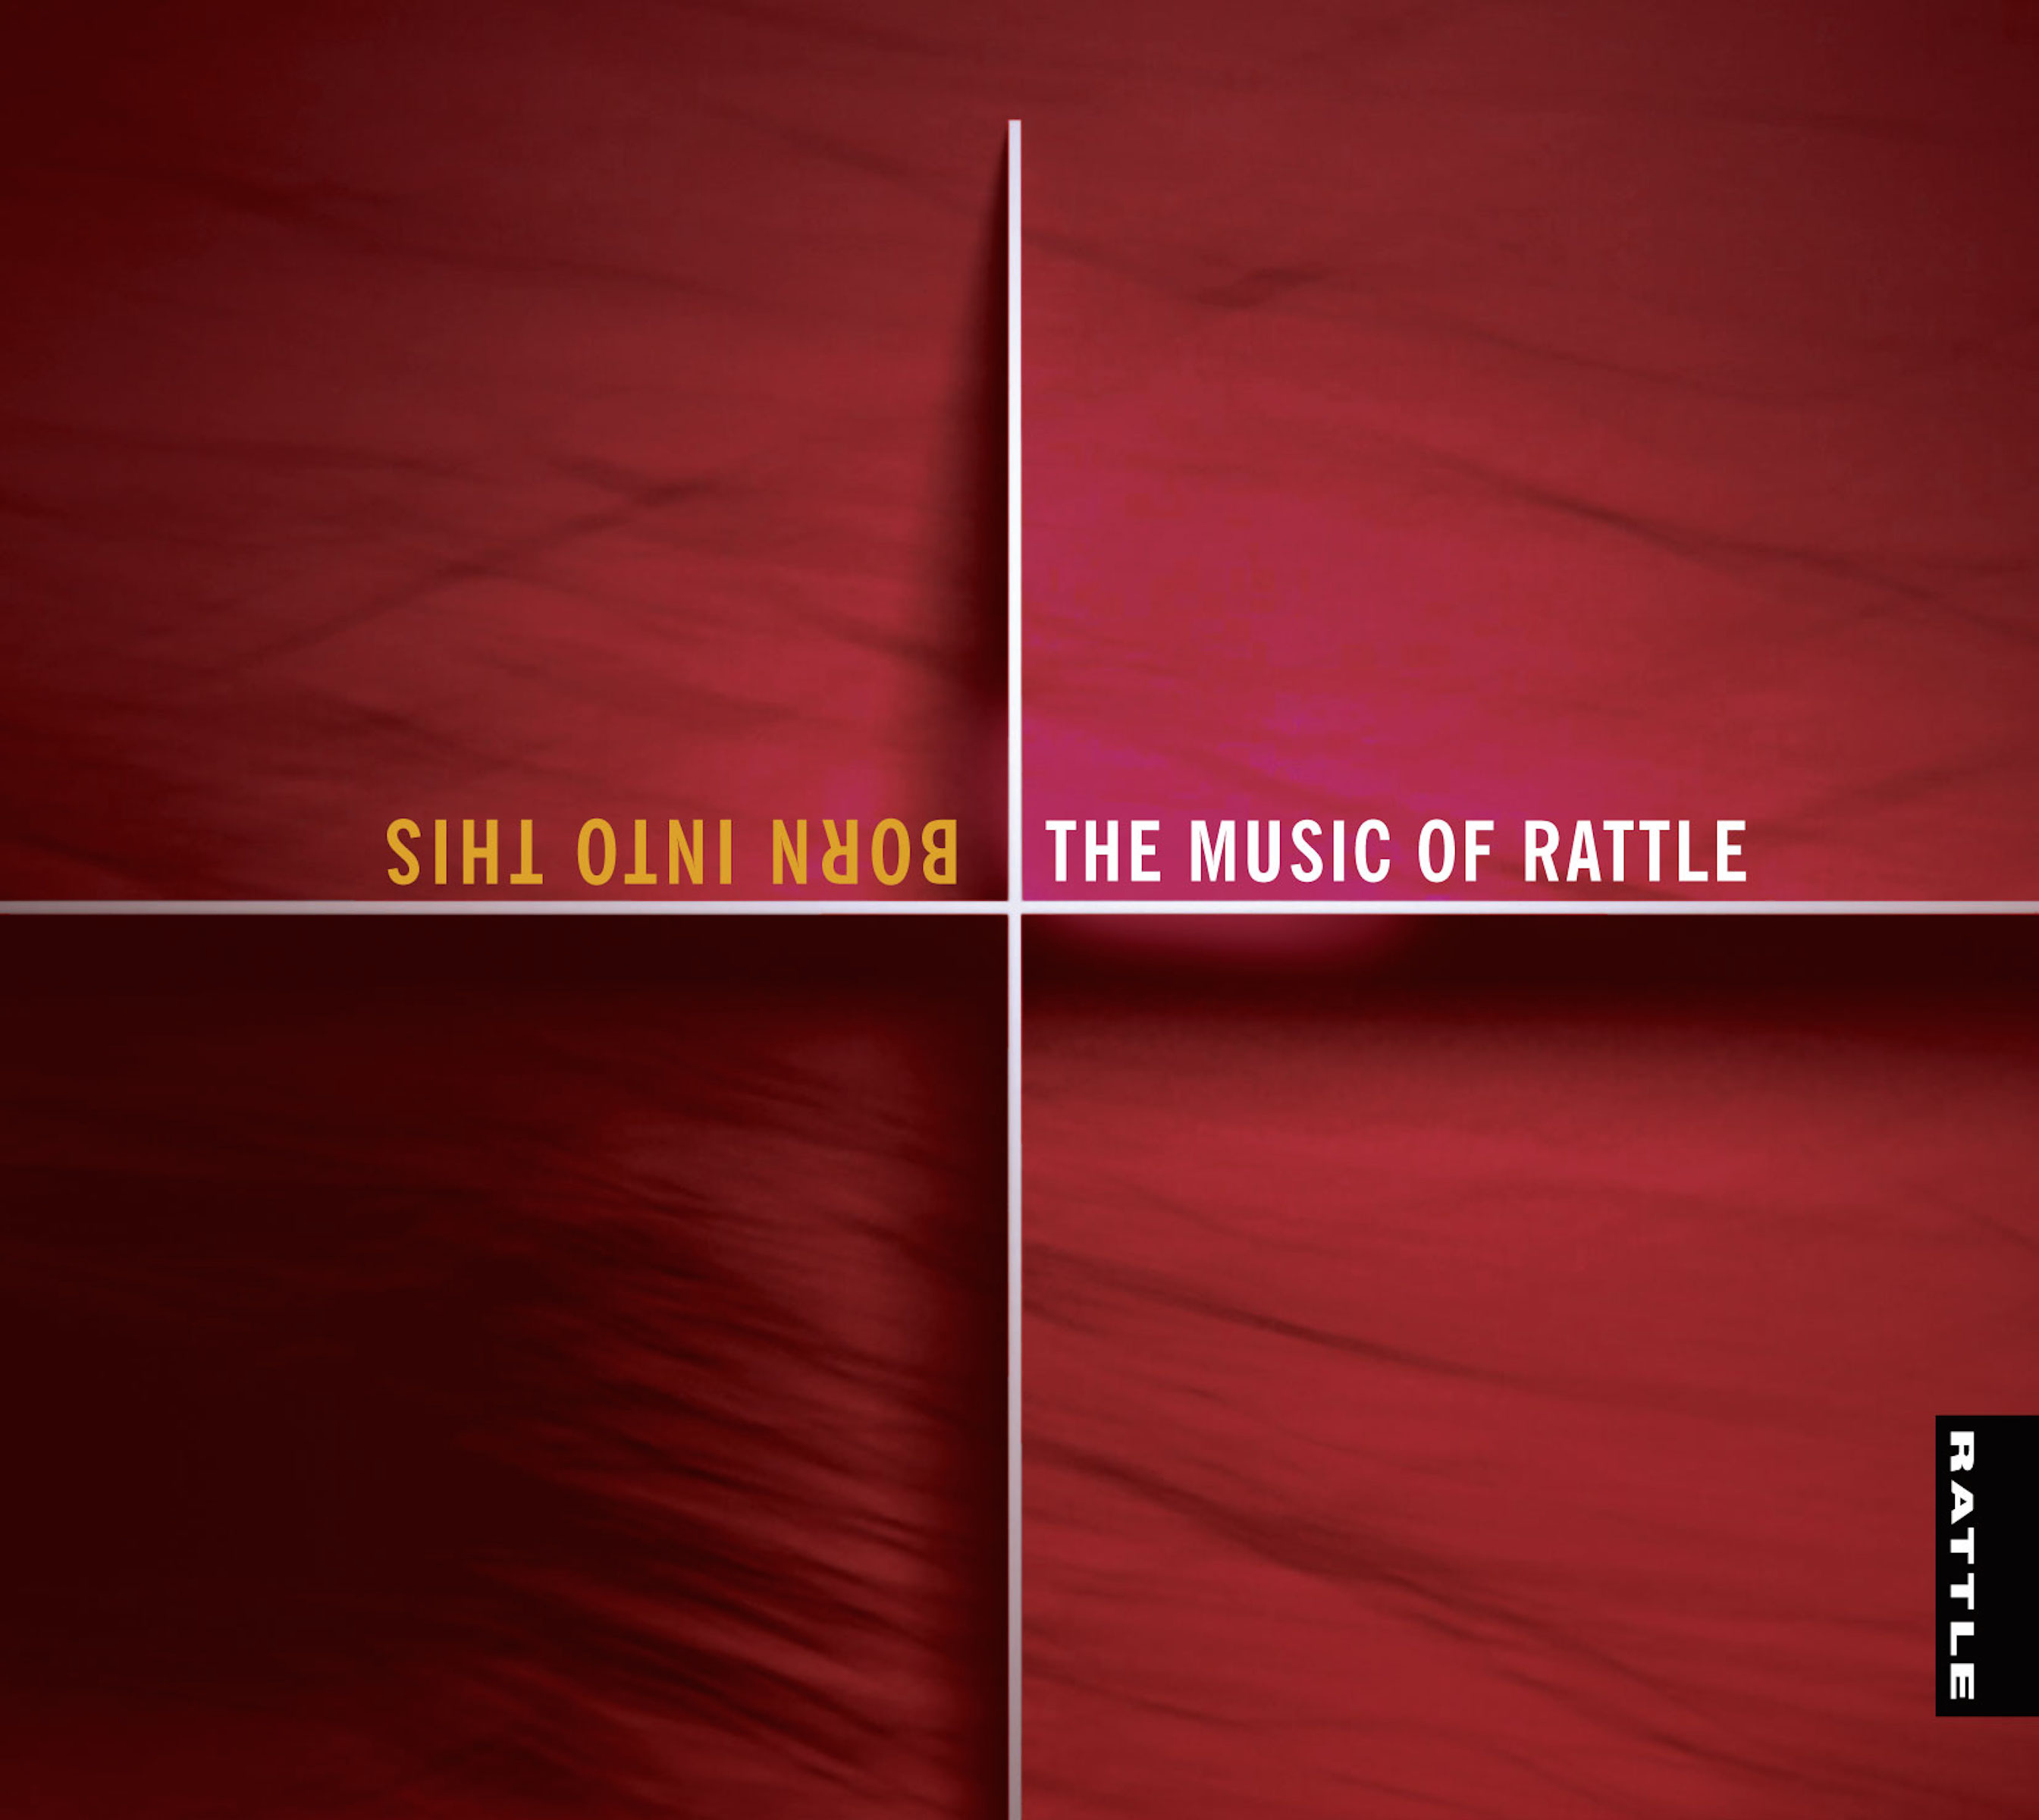 Born into This | The Music of Rattle - downloadable MP3 ALBUM